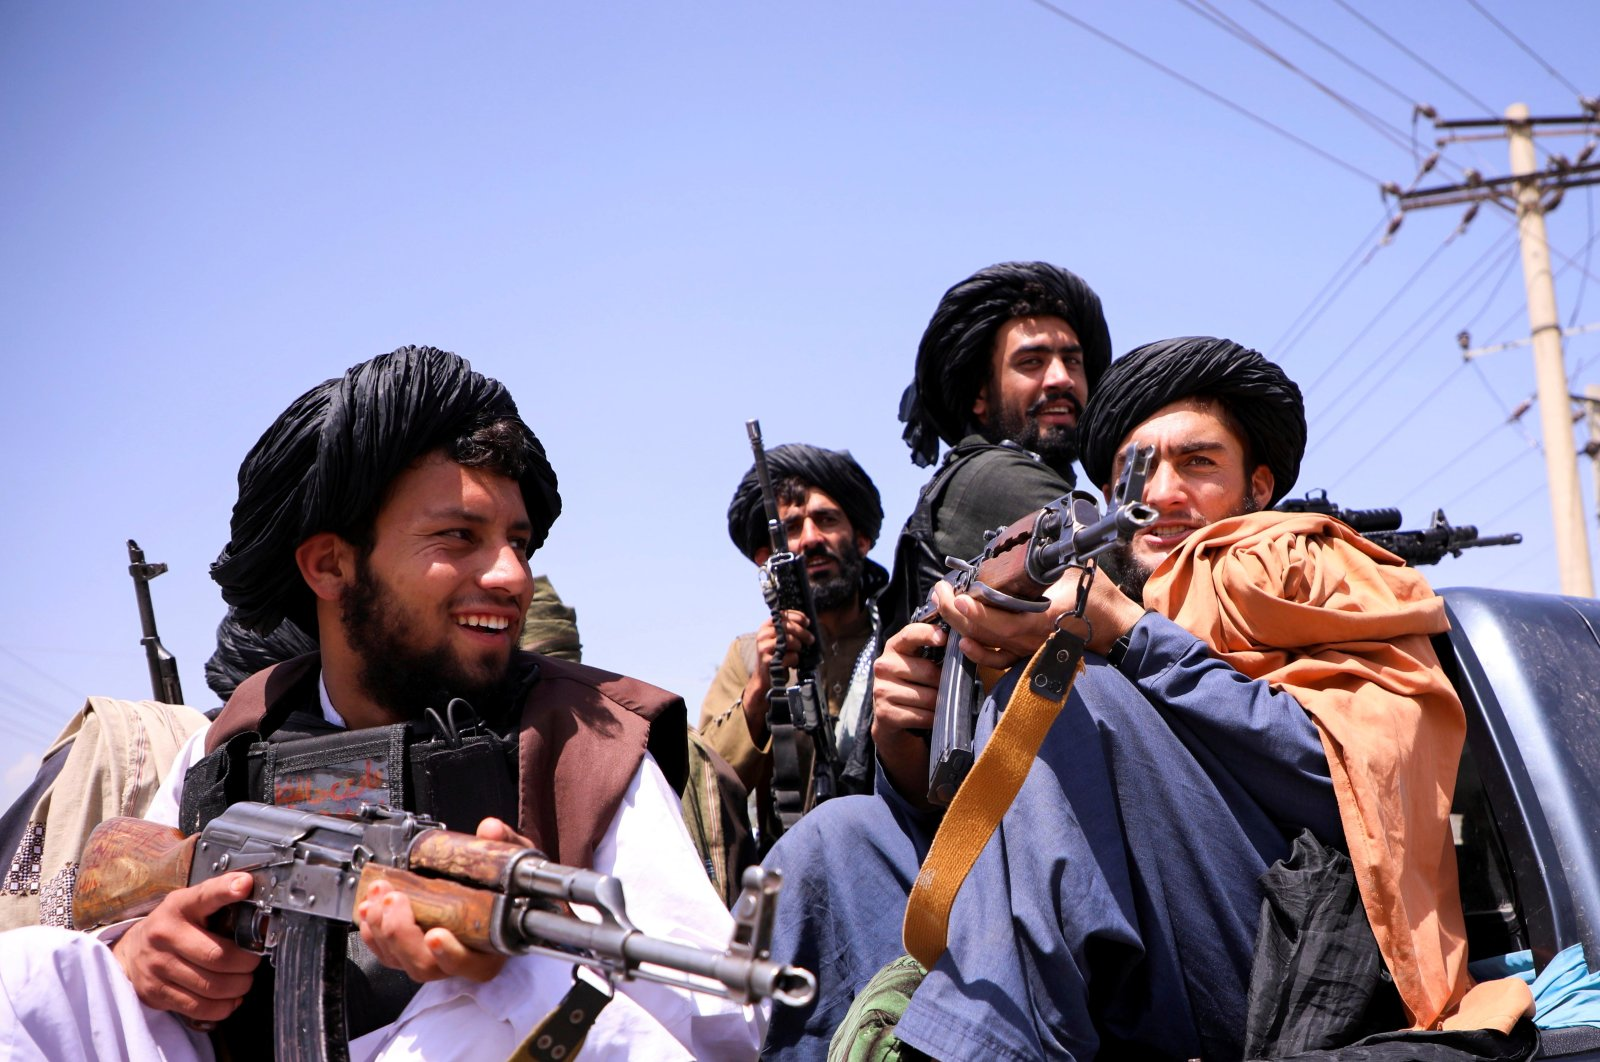 Taliban forces patrol in front of Hamid Karzai International Airport in Kabul, Afghanistan, Sept. 2, 2021. (REUTERS Photo)